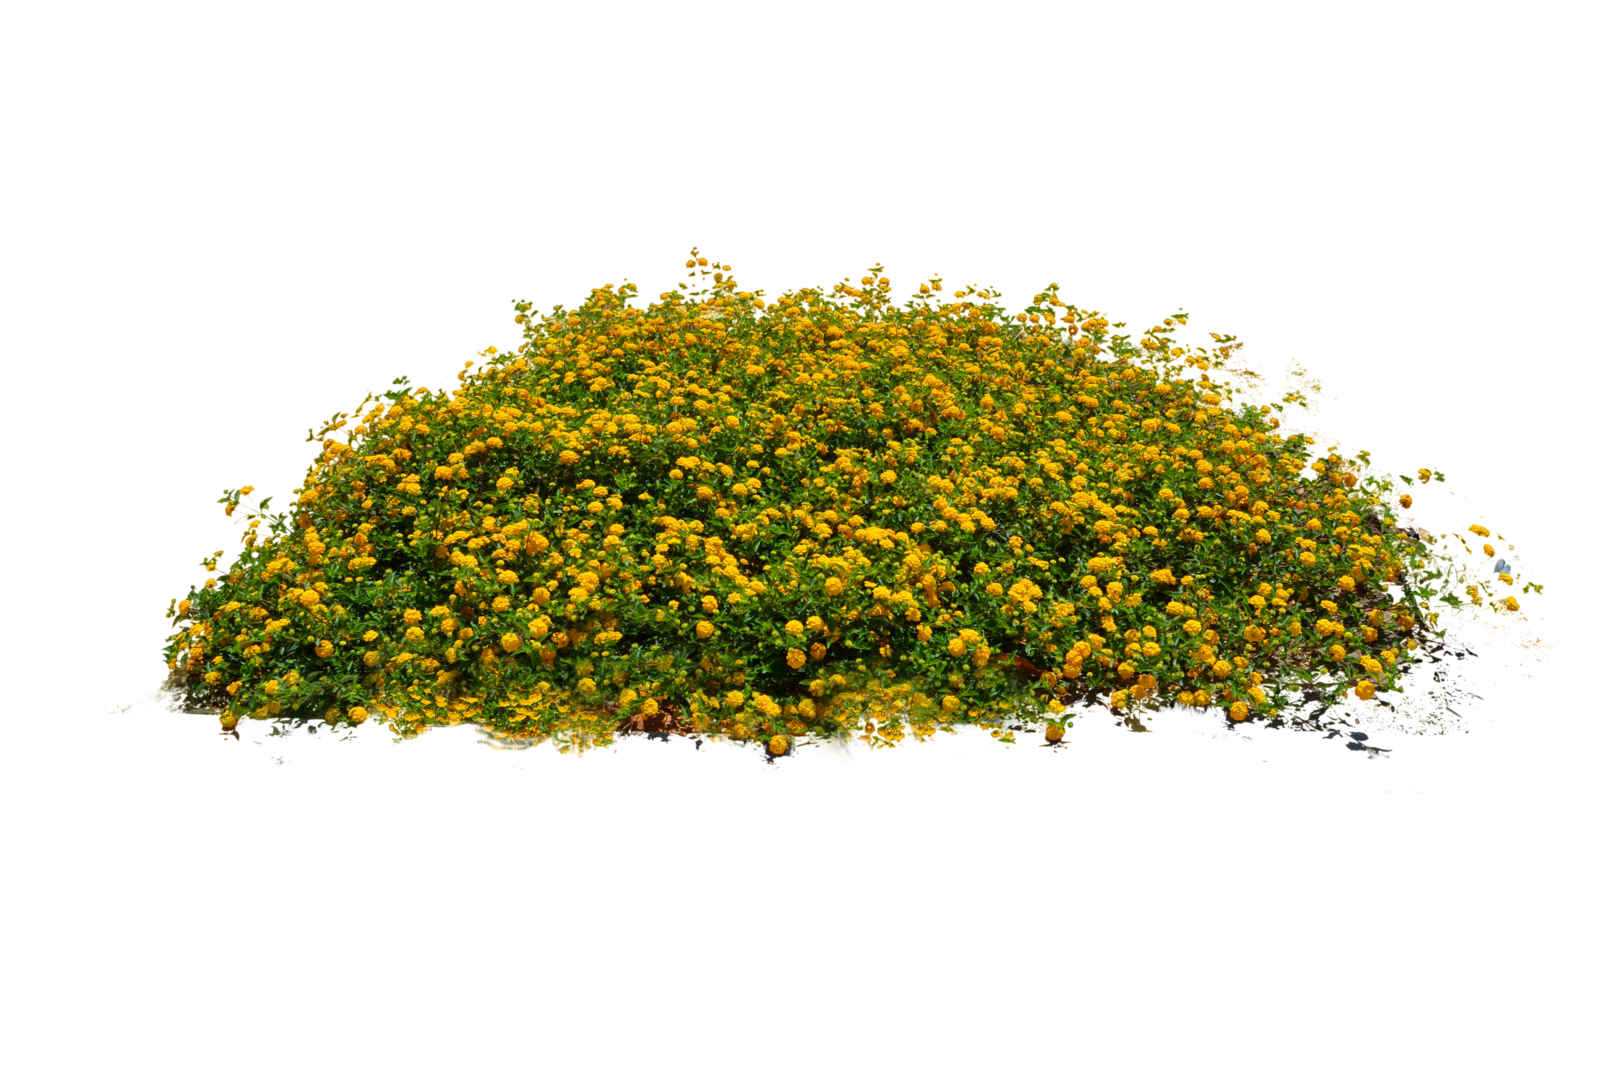 10 Plants & Flowers PNG Images (Free Cutout Plants) for